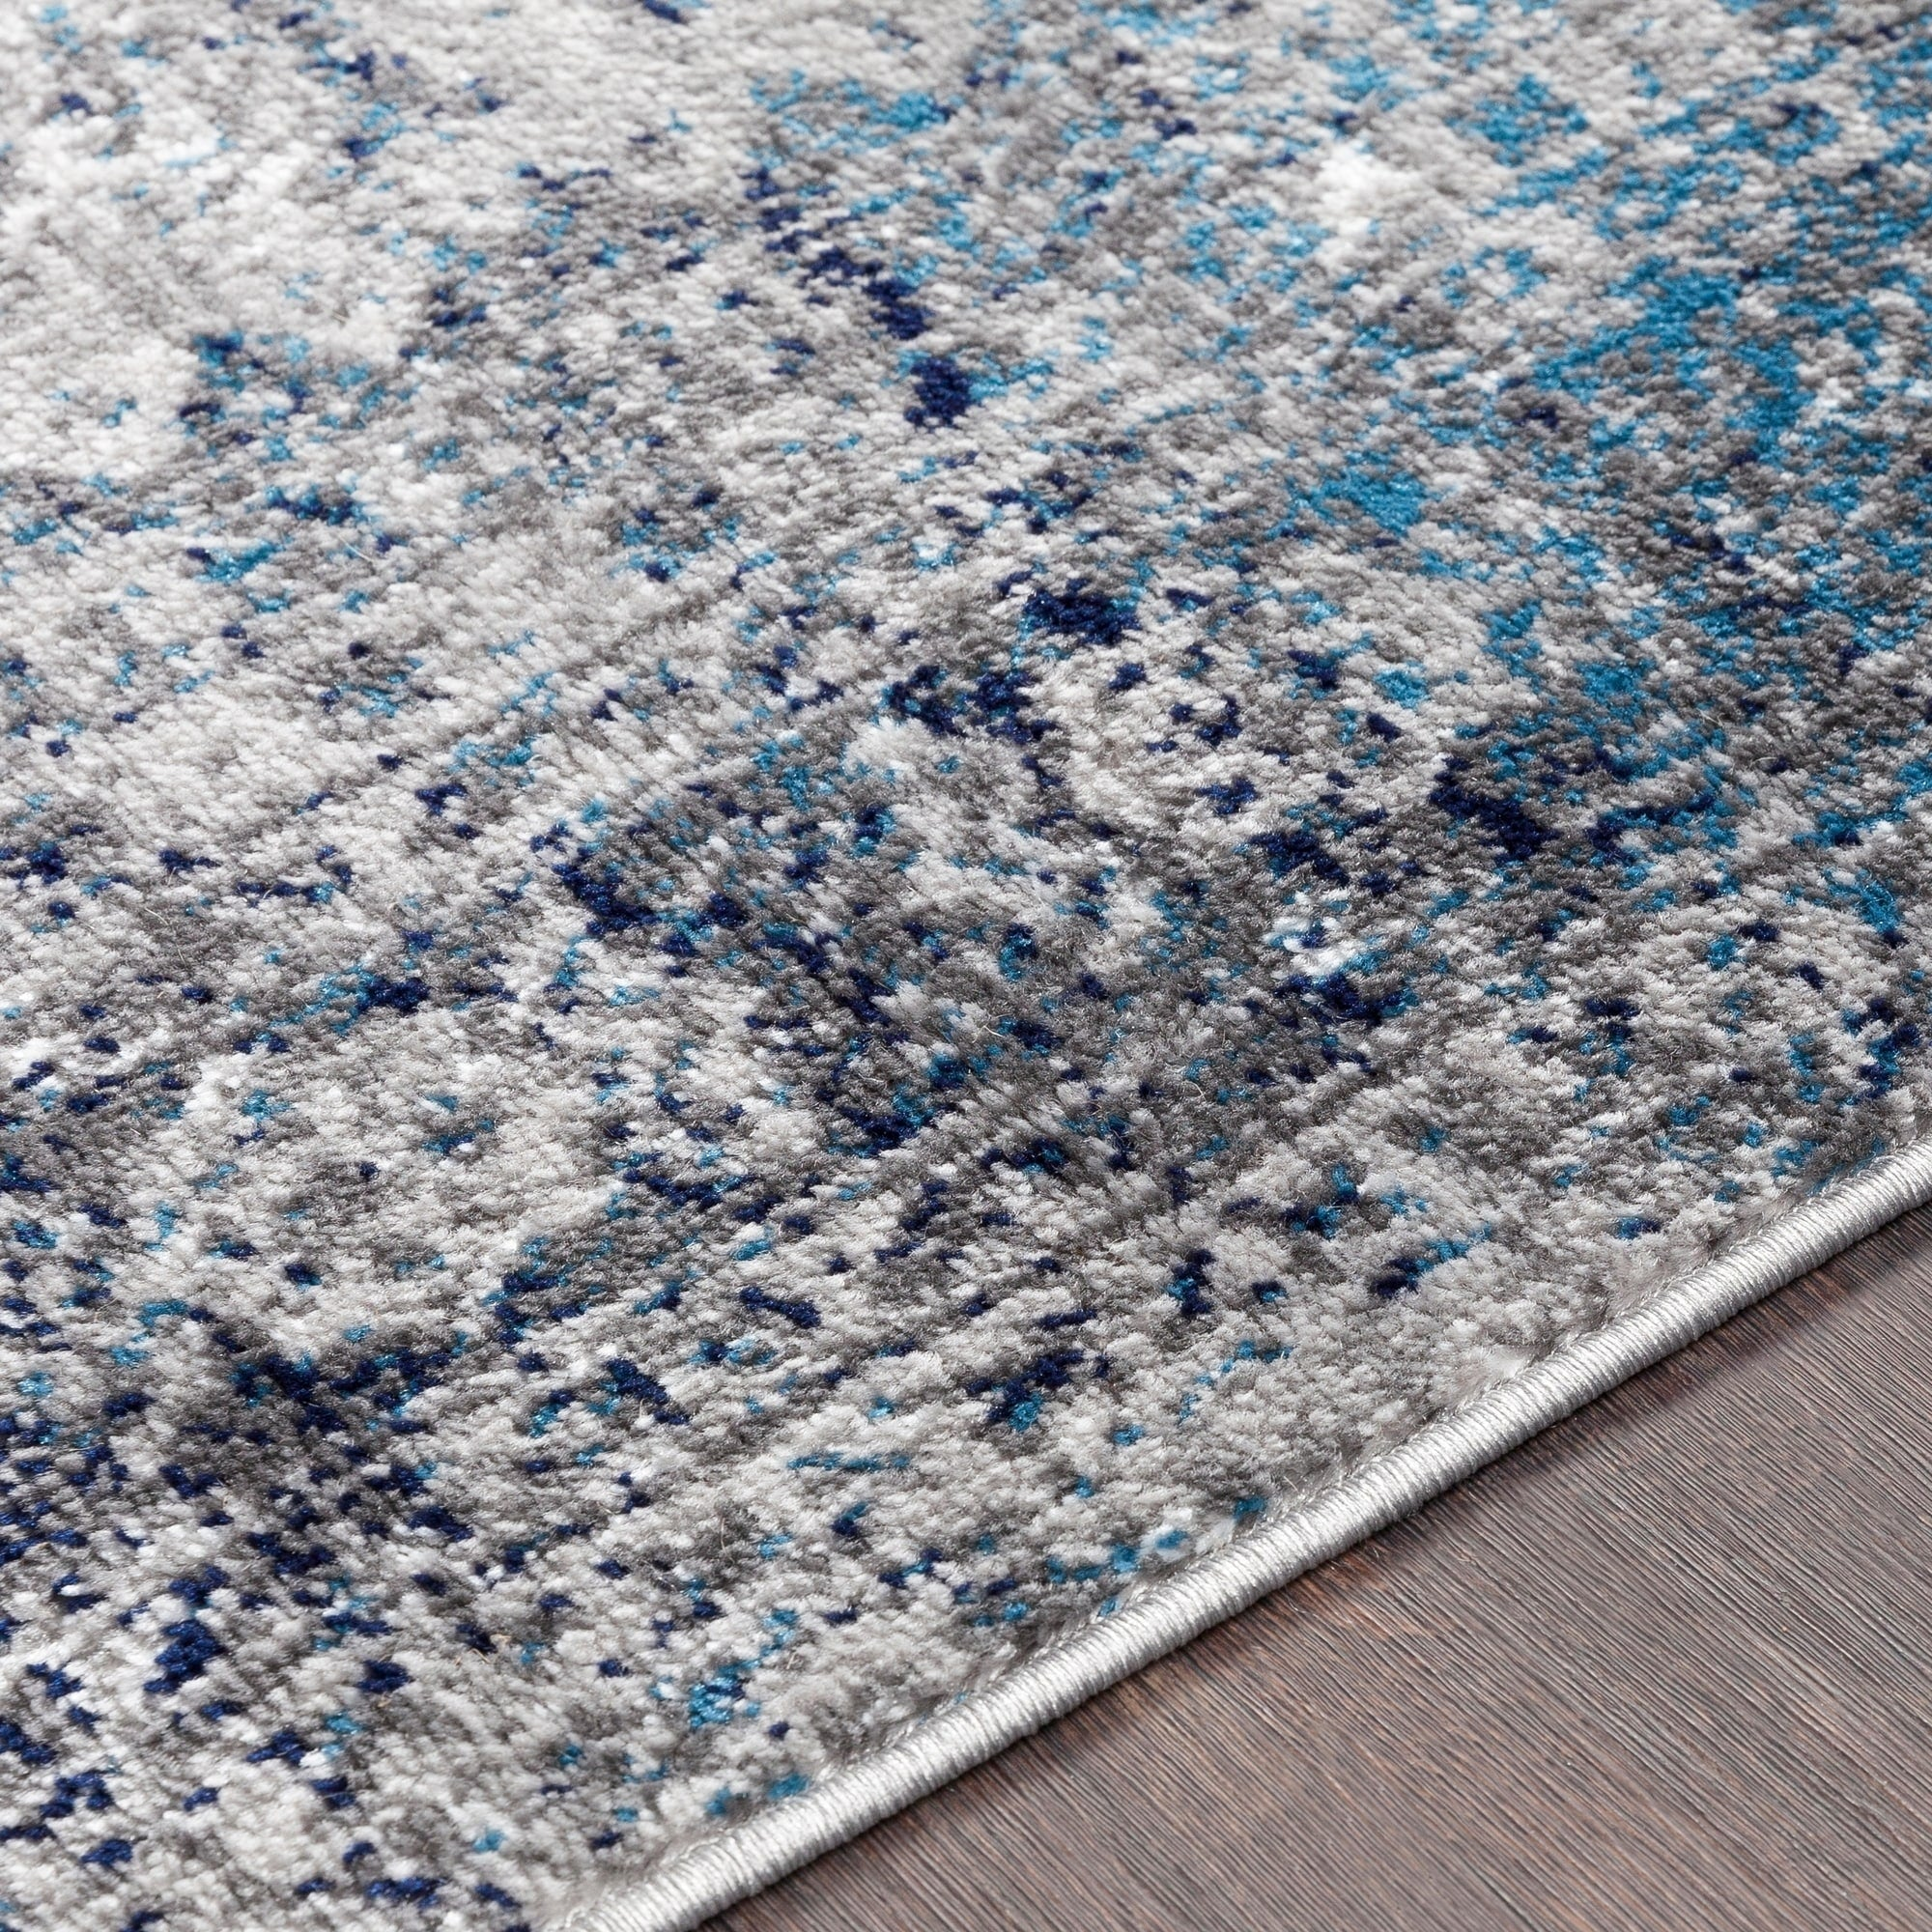 Oriental Distressed Persian Pattern Sky Blue Light Gray Soft Area Rug Modern Rugs And Decor